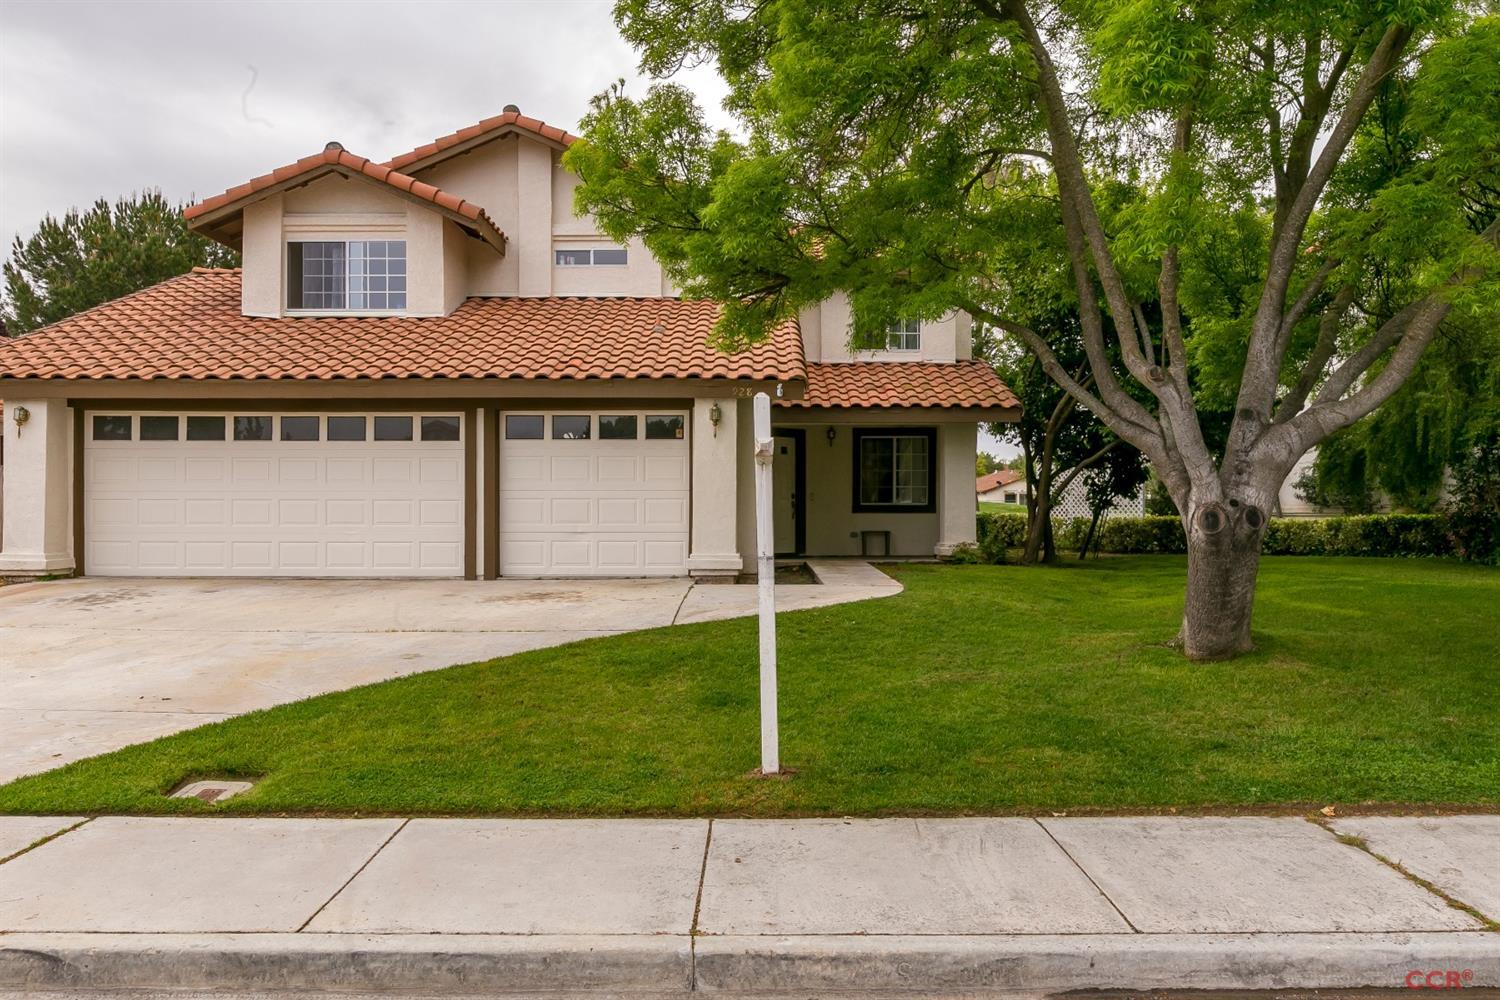 928 Torrey Pines Dr, Paso Robles, CA 93446